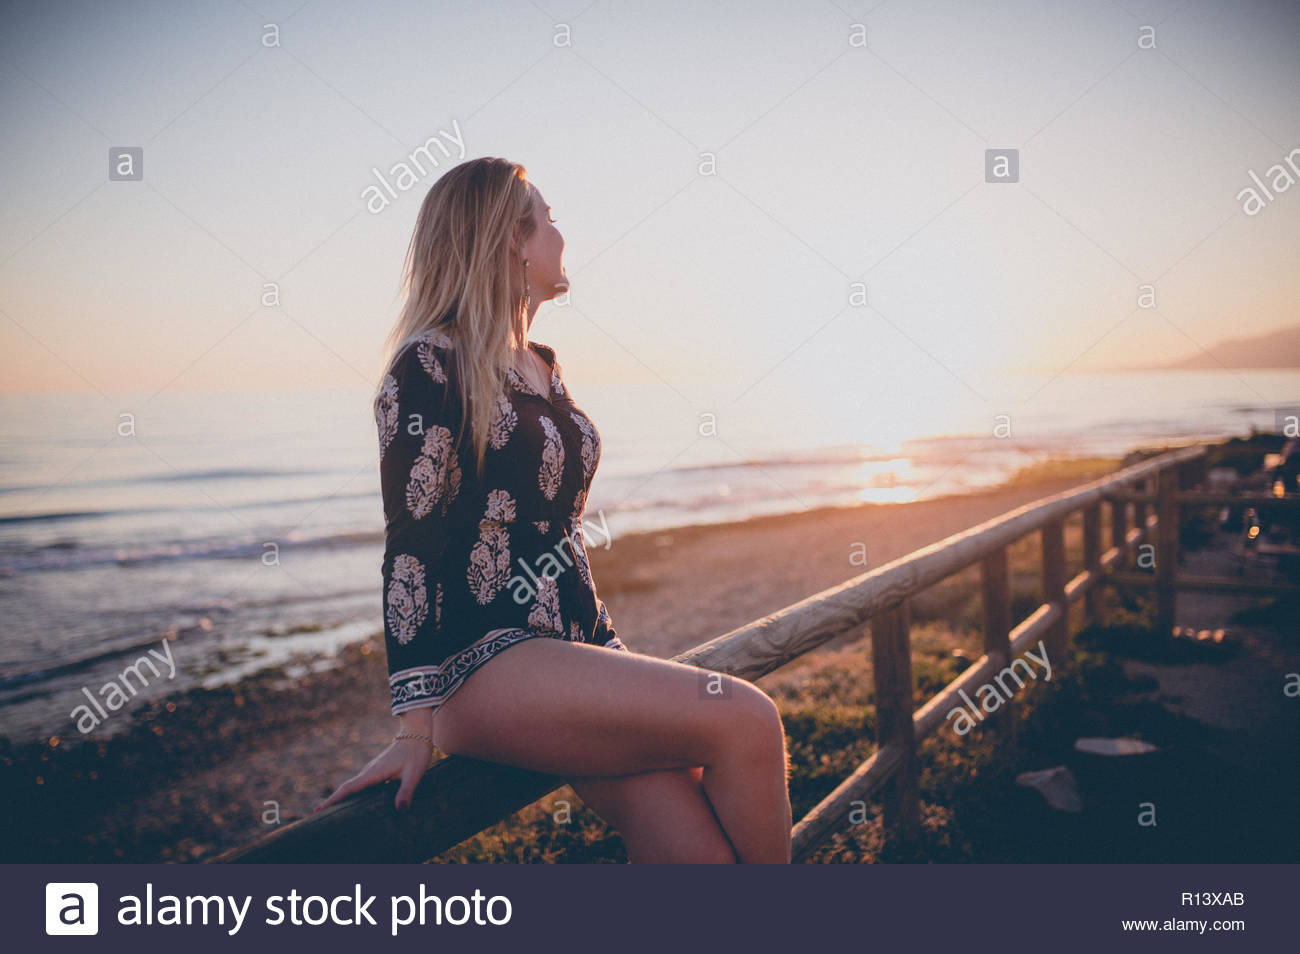 A woman looking out at sea during sunset - Stock Image